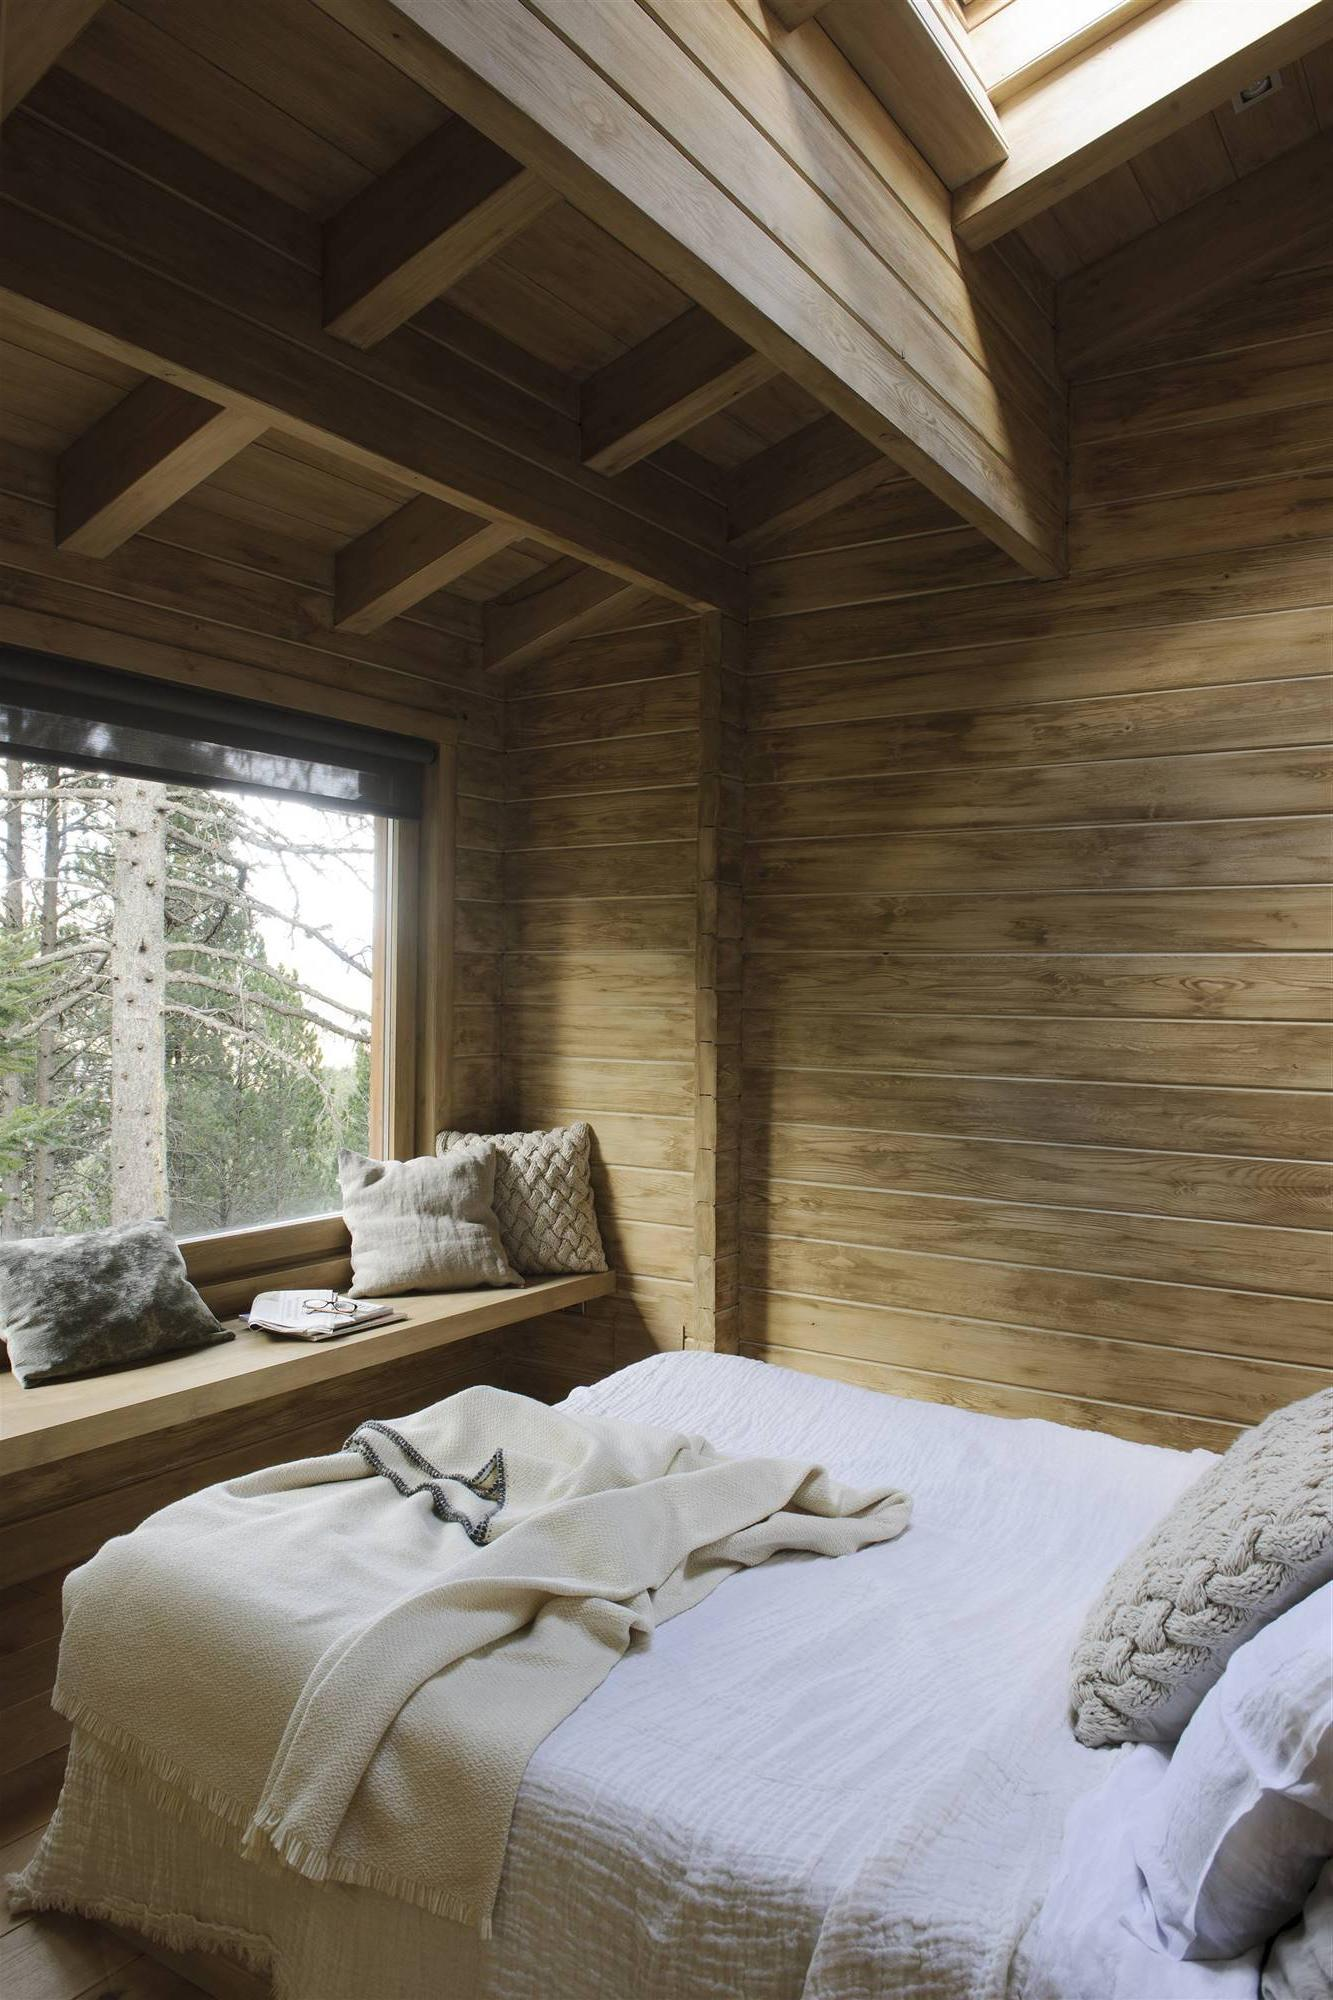 RUSTIC BEDROOM WITH VIEWS FROM THE BED